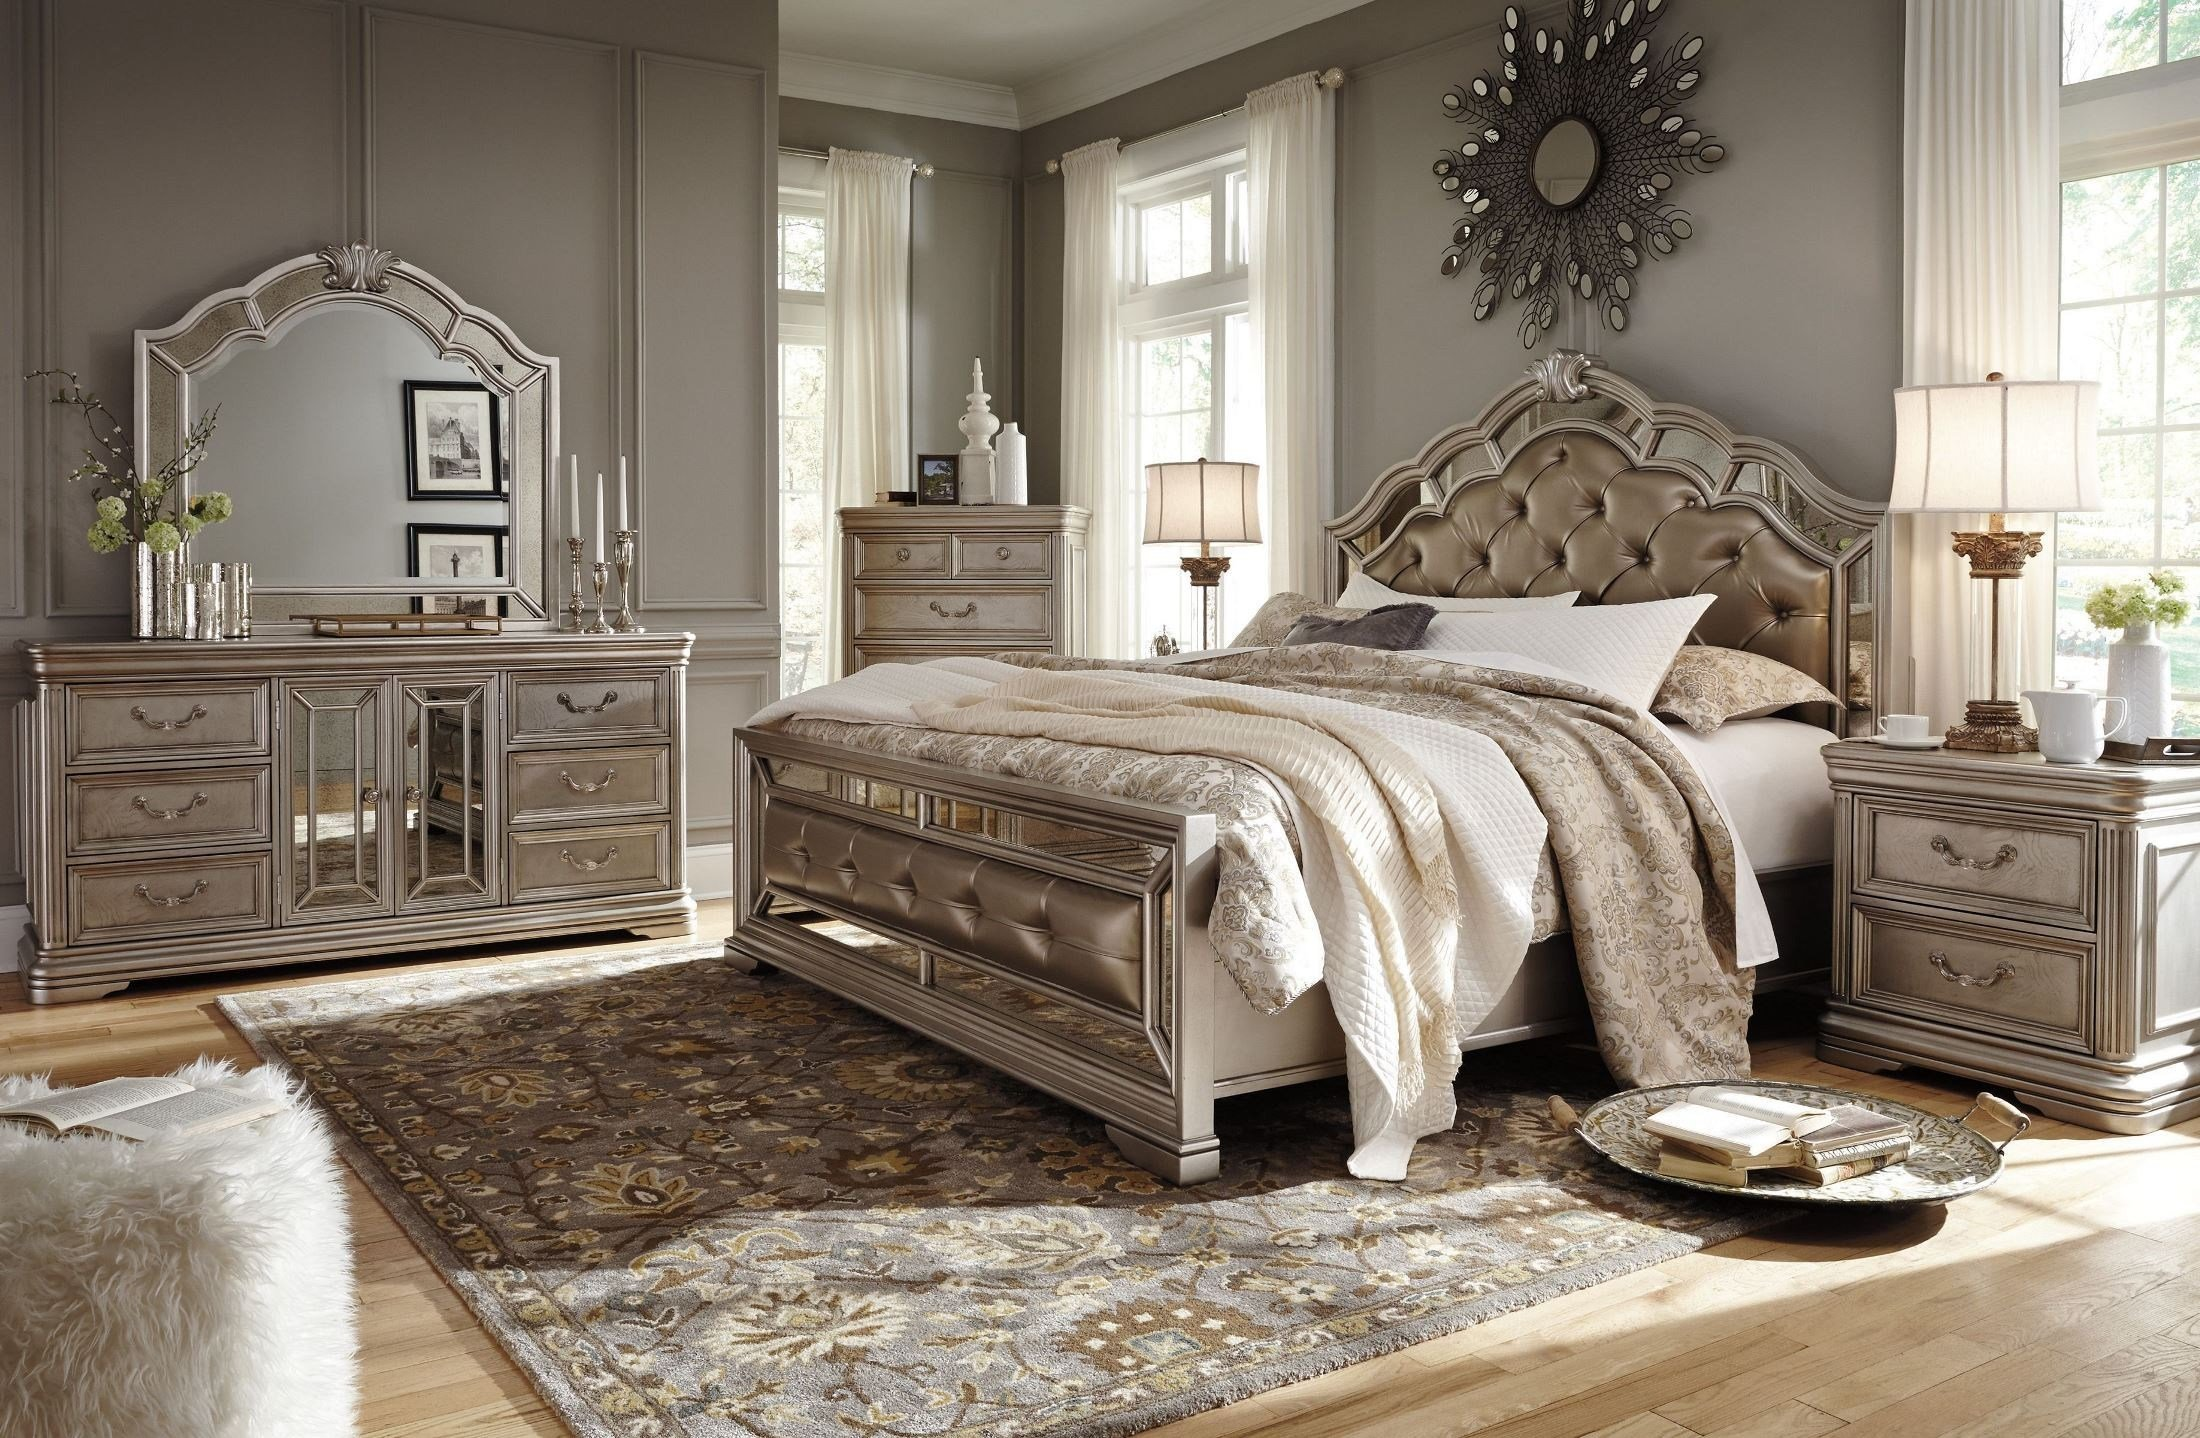 Best Birlanny Silver Upholstered Panel Bedroom Set B720 57 54 96 Ashley With Pictures Original 1024 x 768